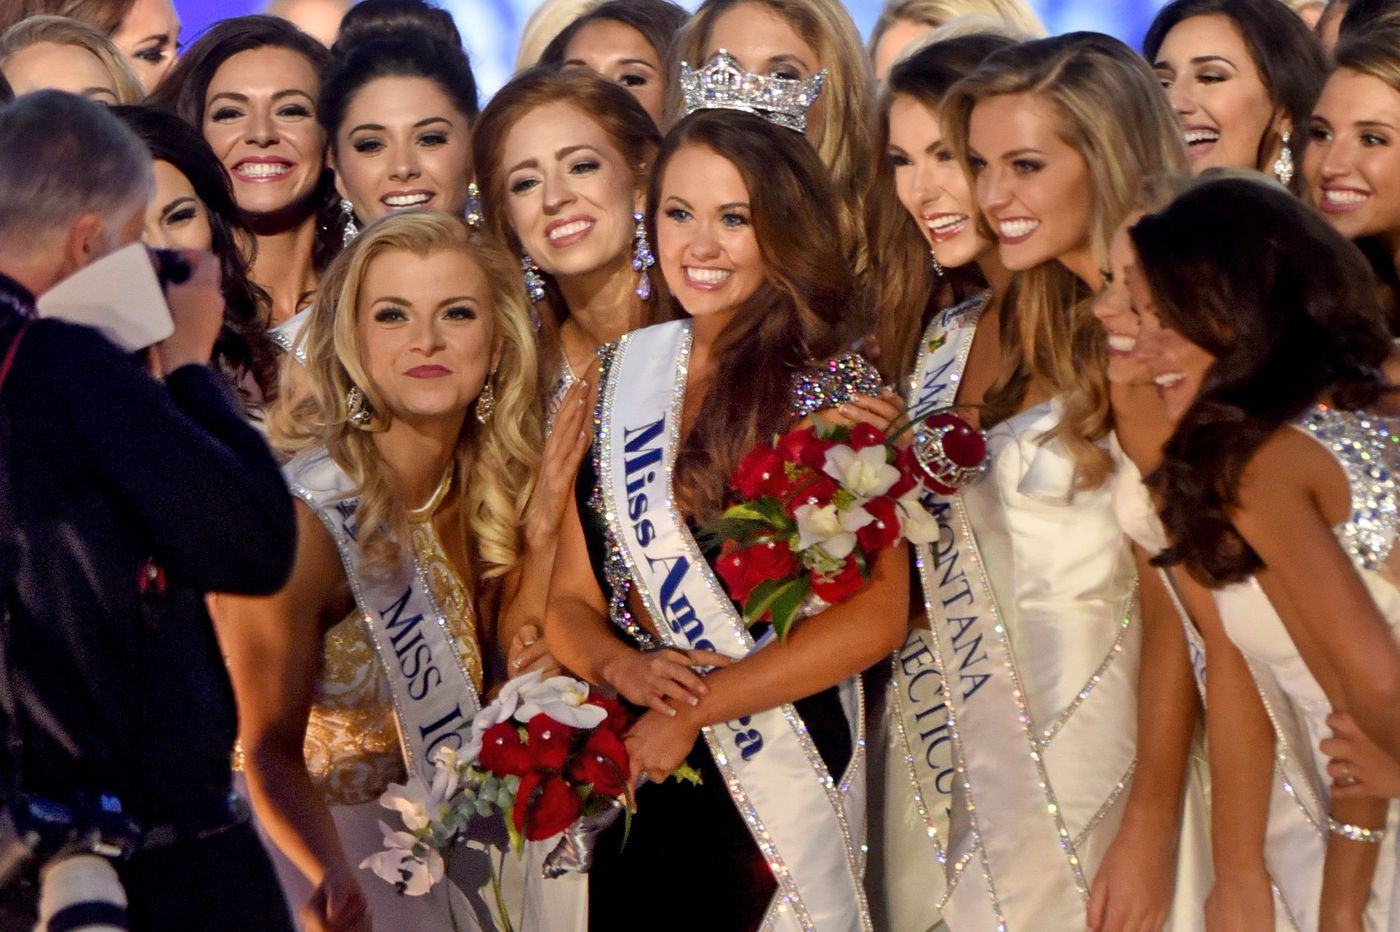 Miss America eliminates swimsuits and won't judge contestants on looks